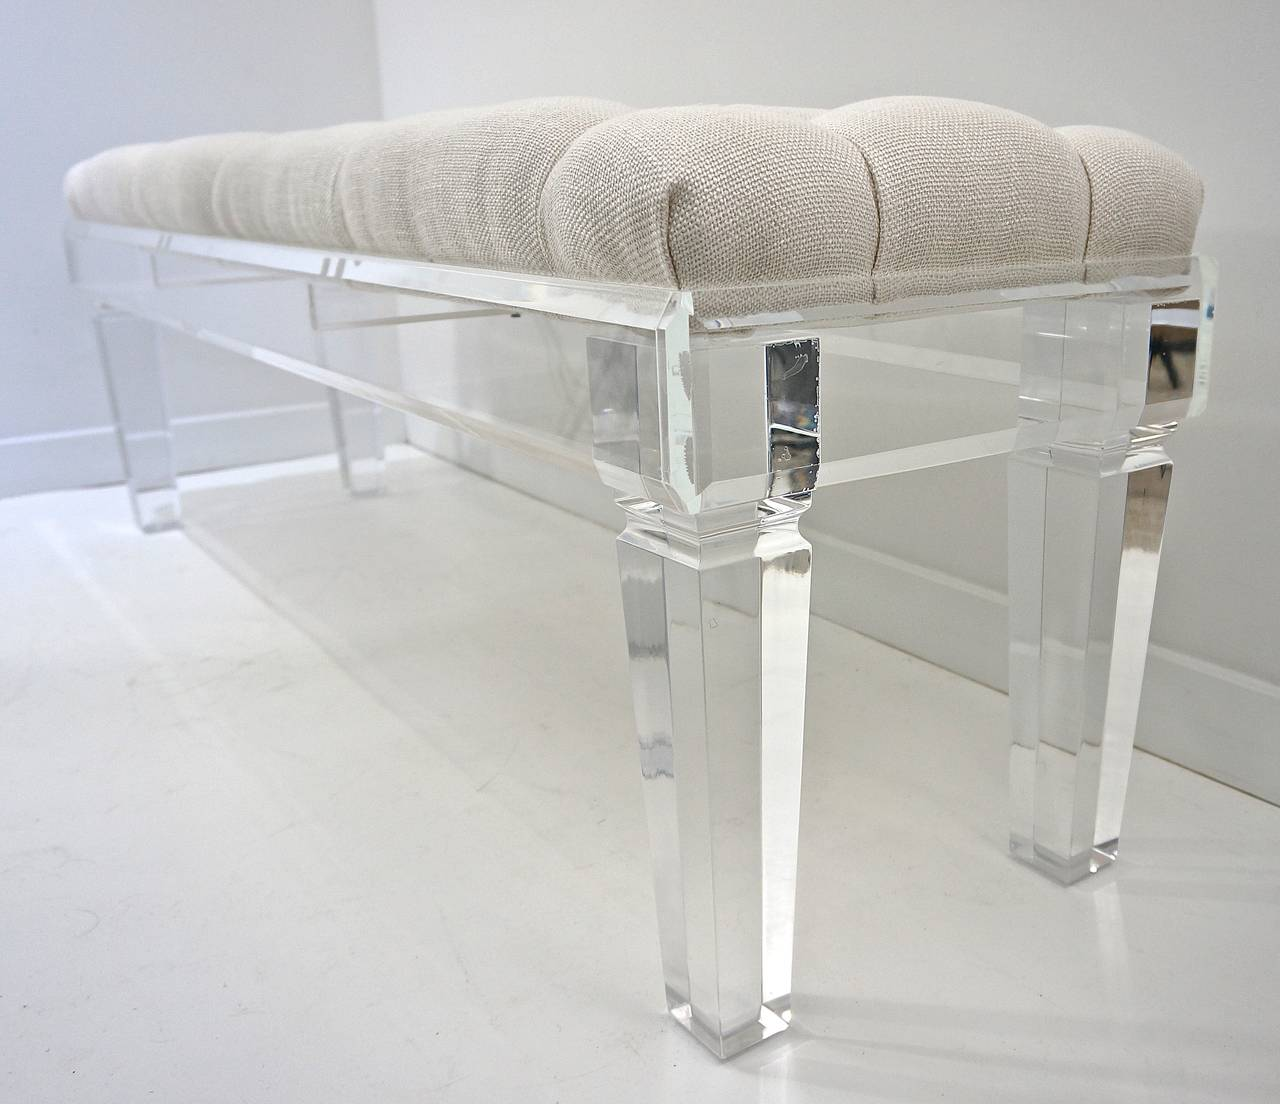 Bespoke Contemporary Acrylic Bench With Button Tuffted Upholstery At 1stdibs